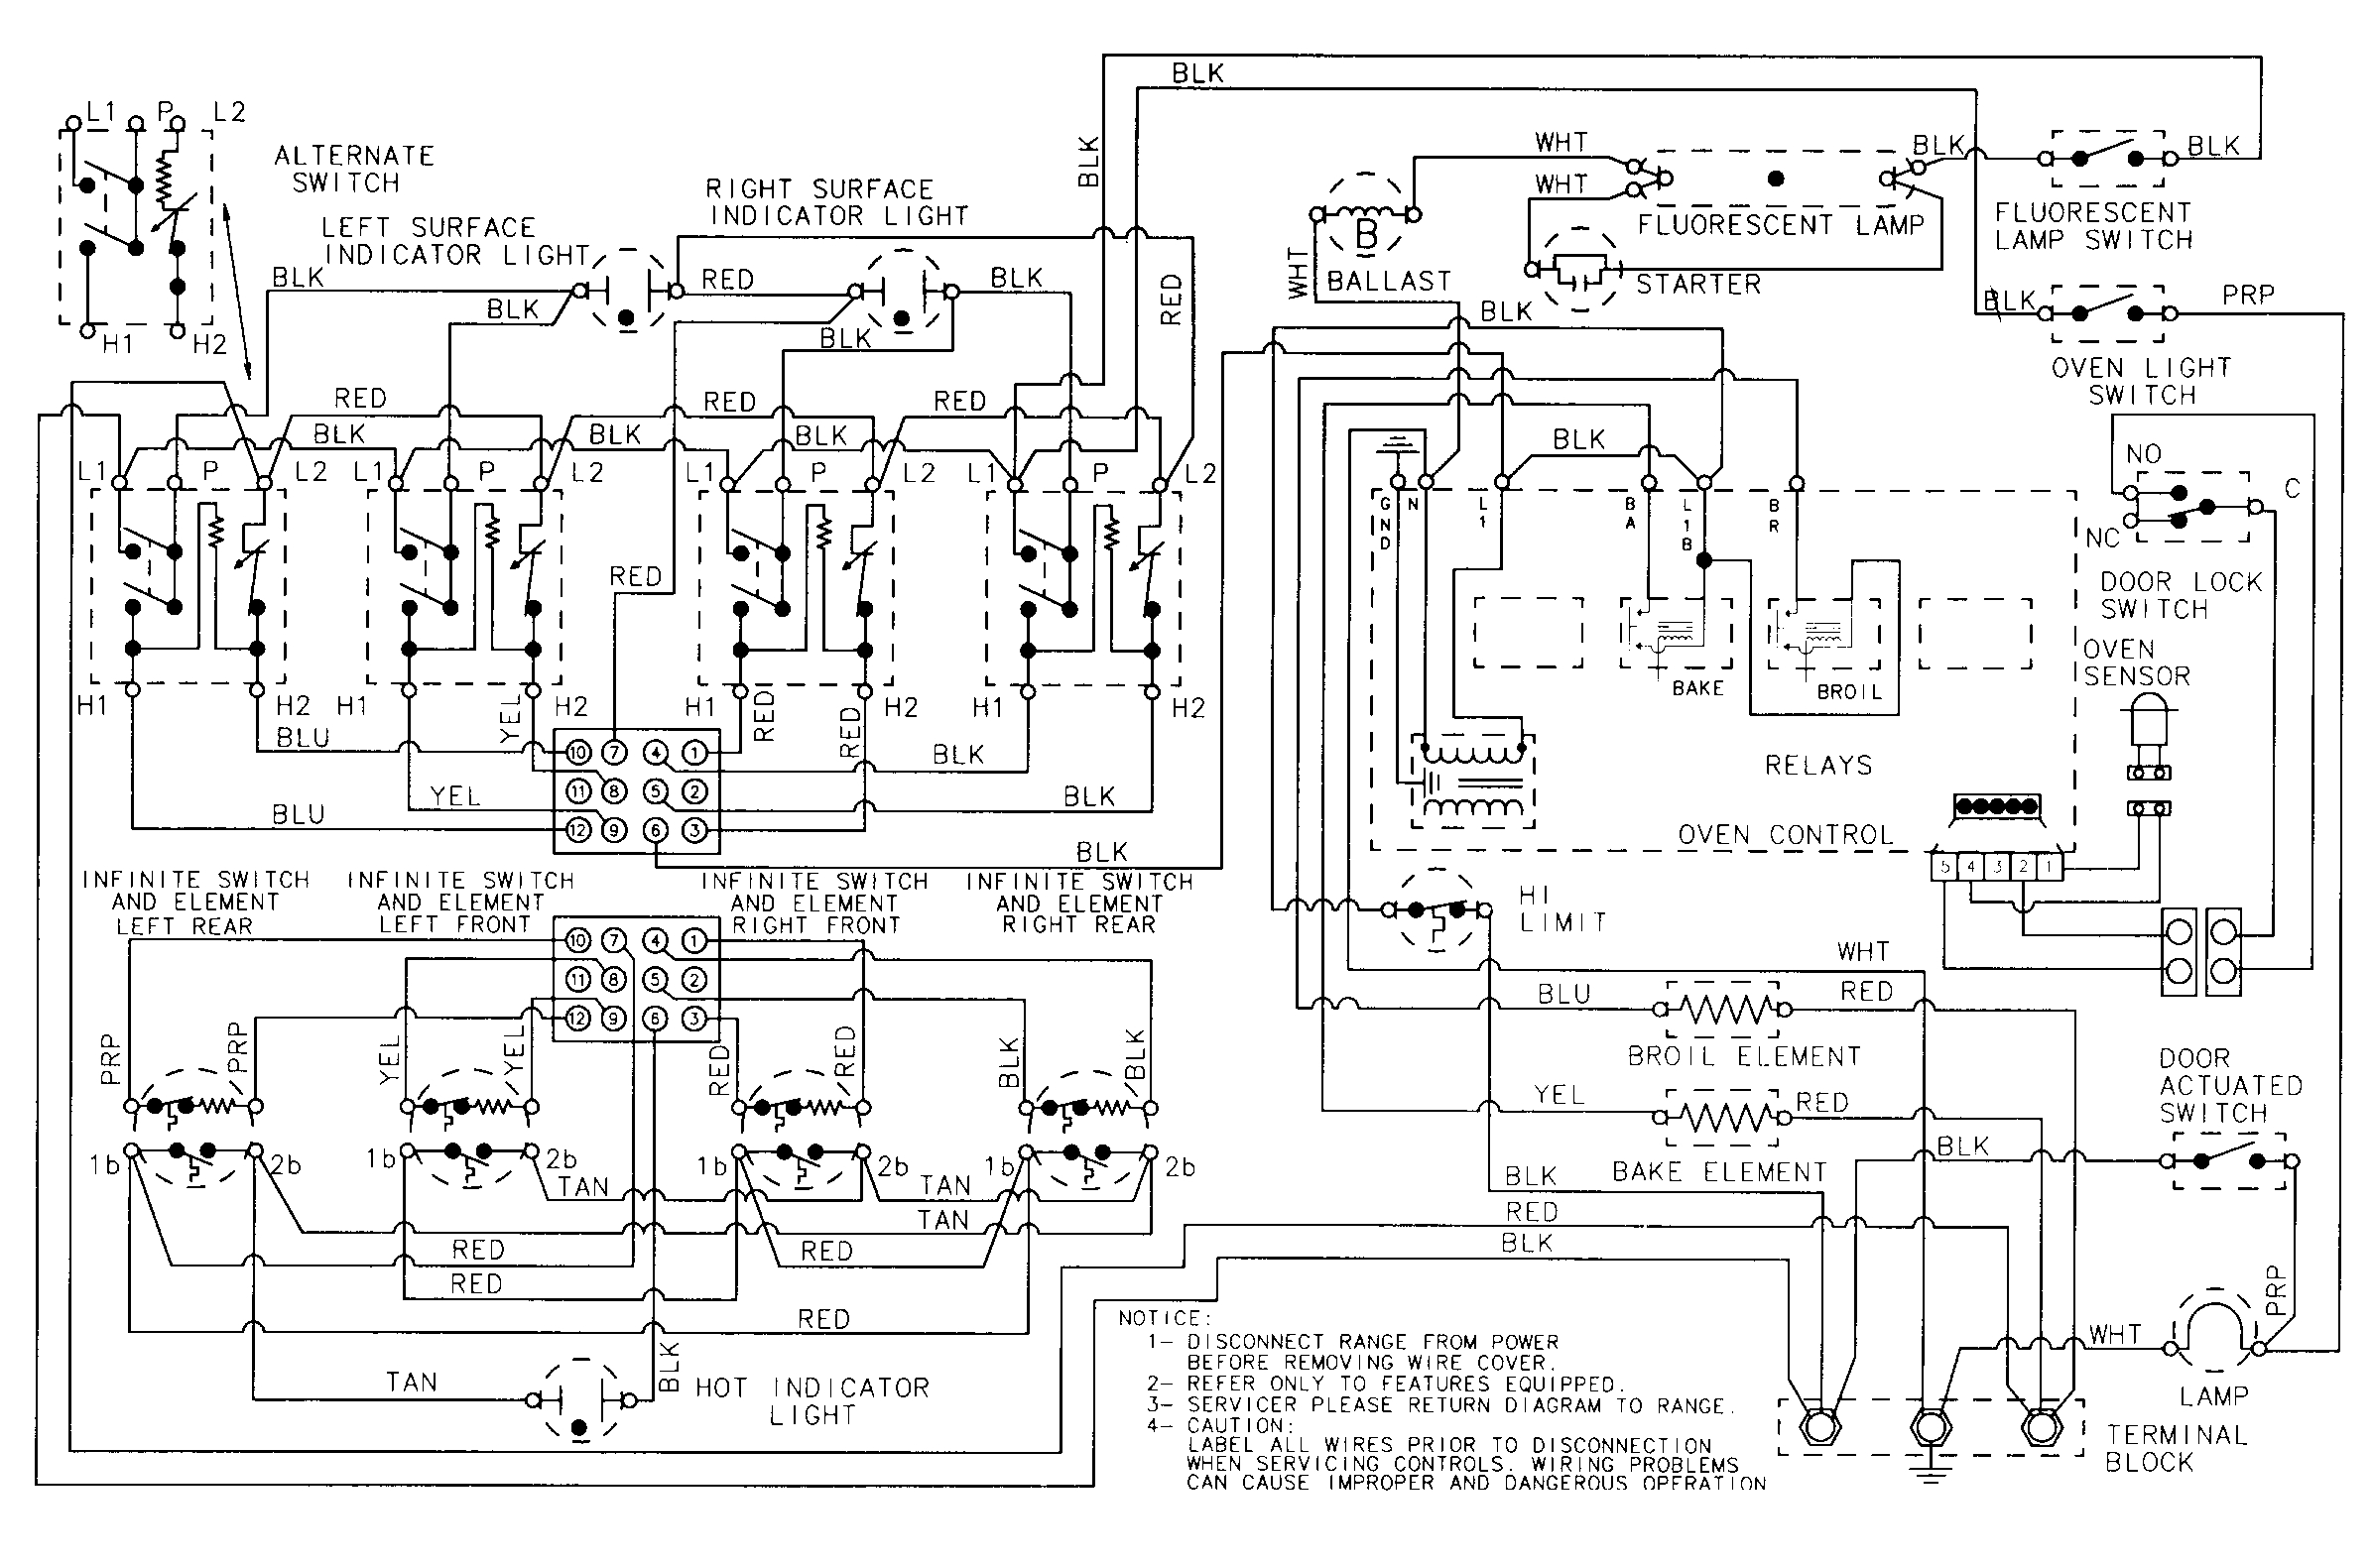 Wiring Diagram Pics Detail: Name: electric oven thermostat ...